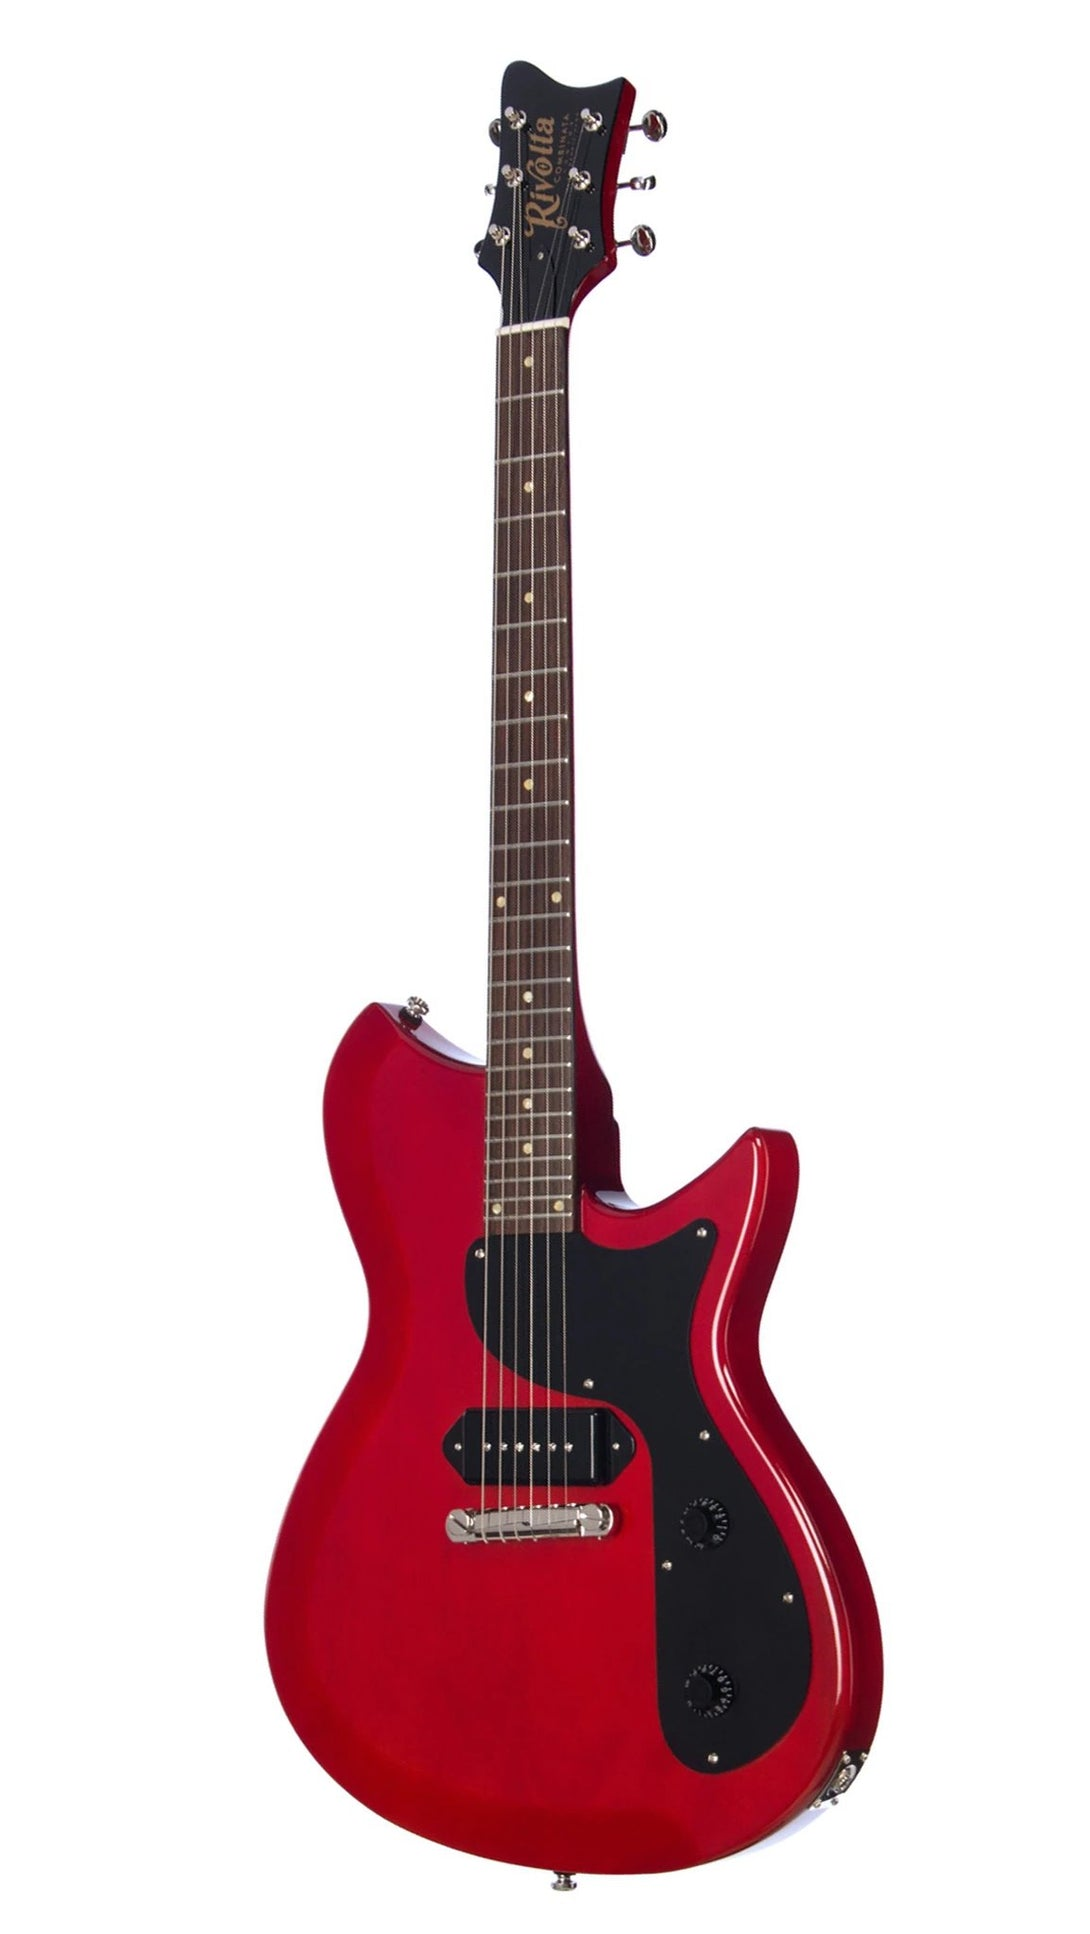 Eastwood Guitars Rivolta Combinata JR Rosso Red Angled